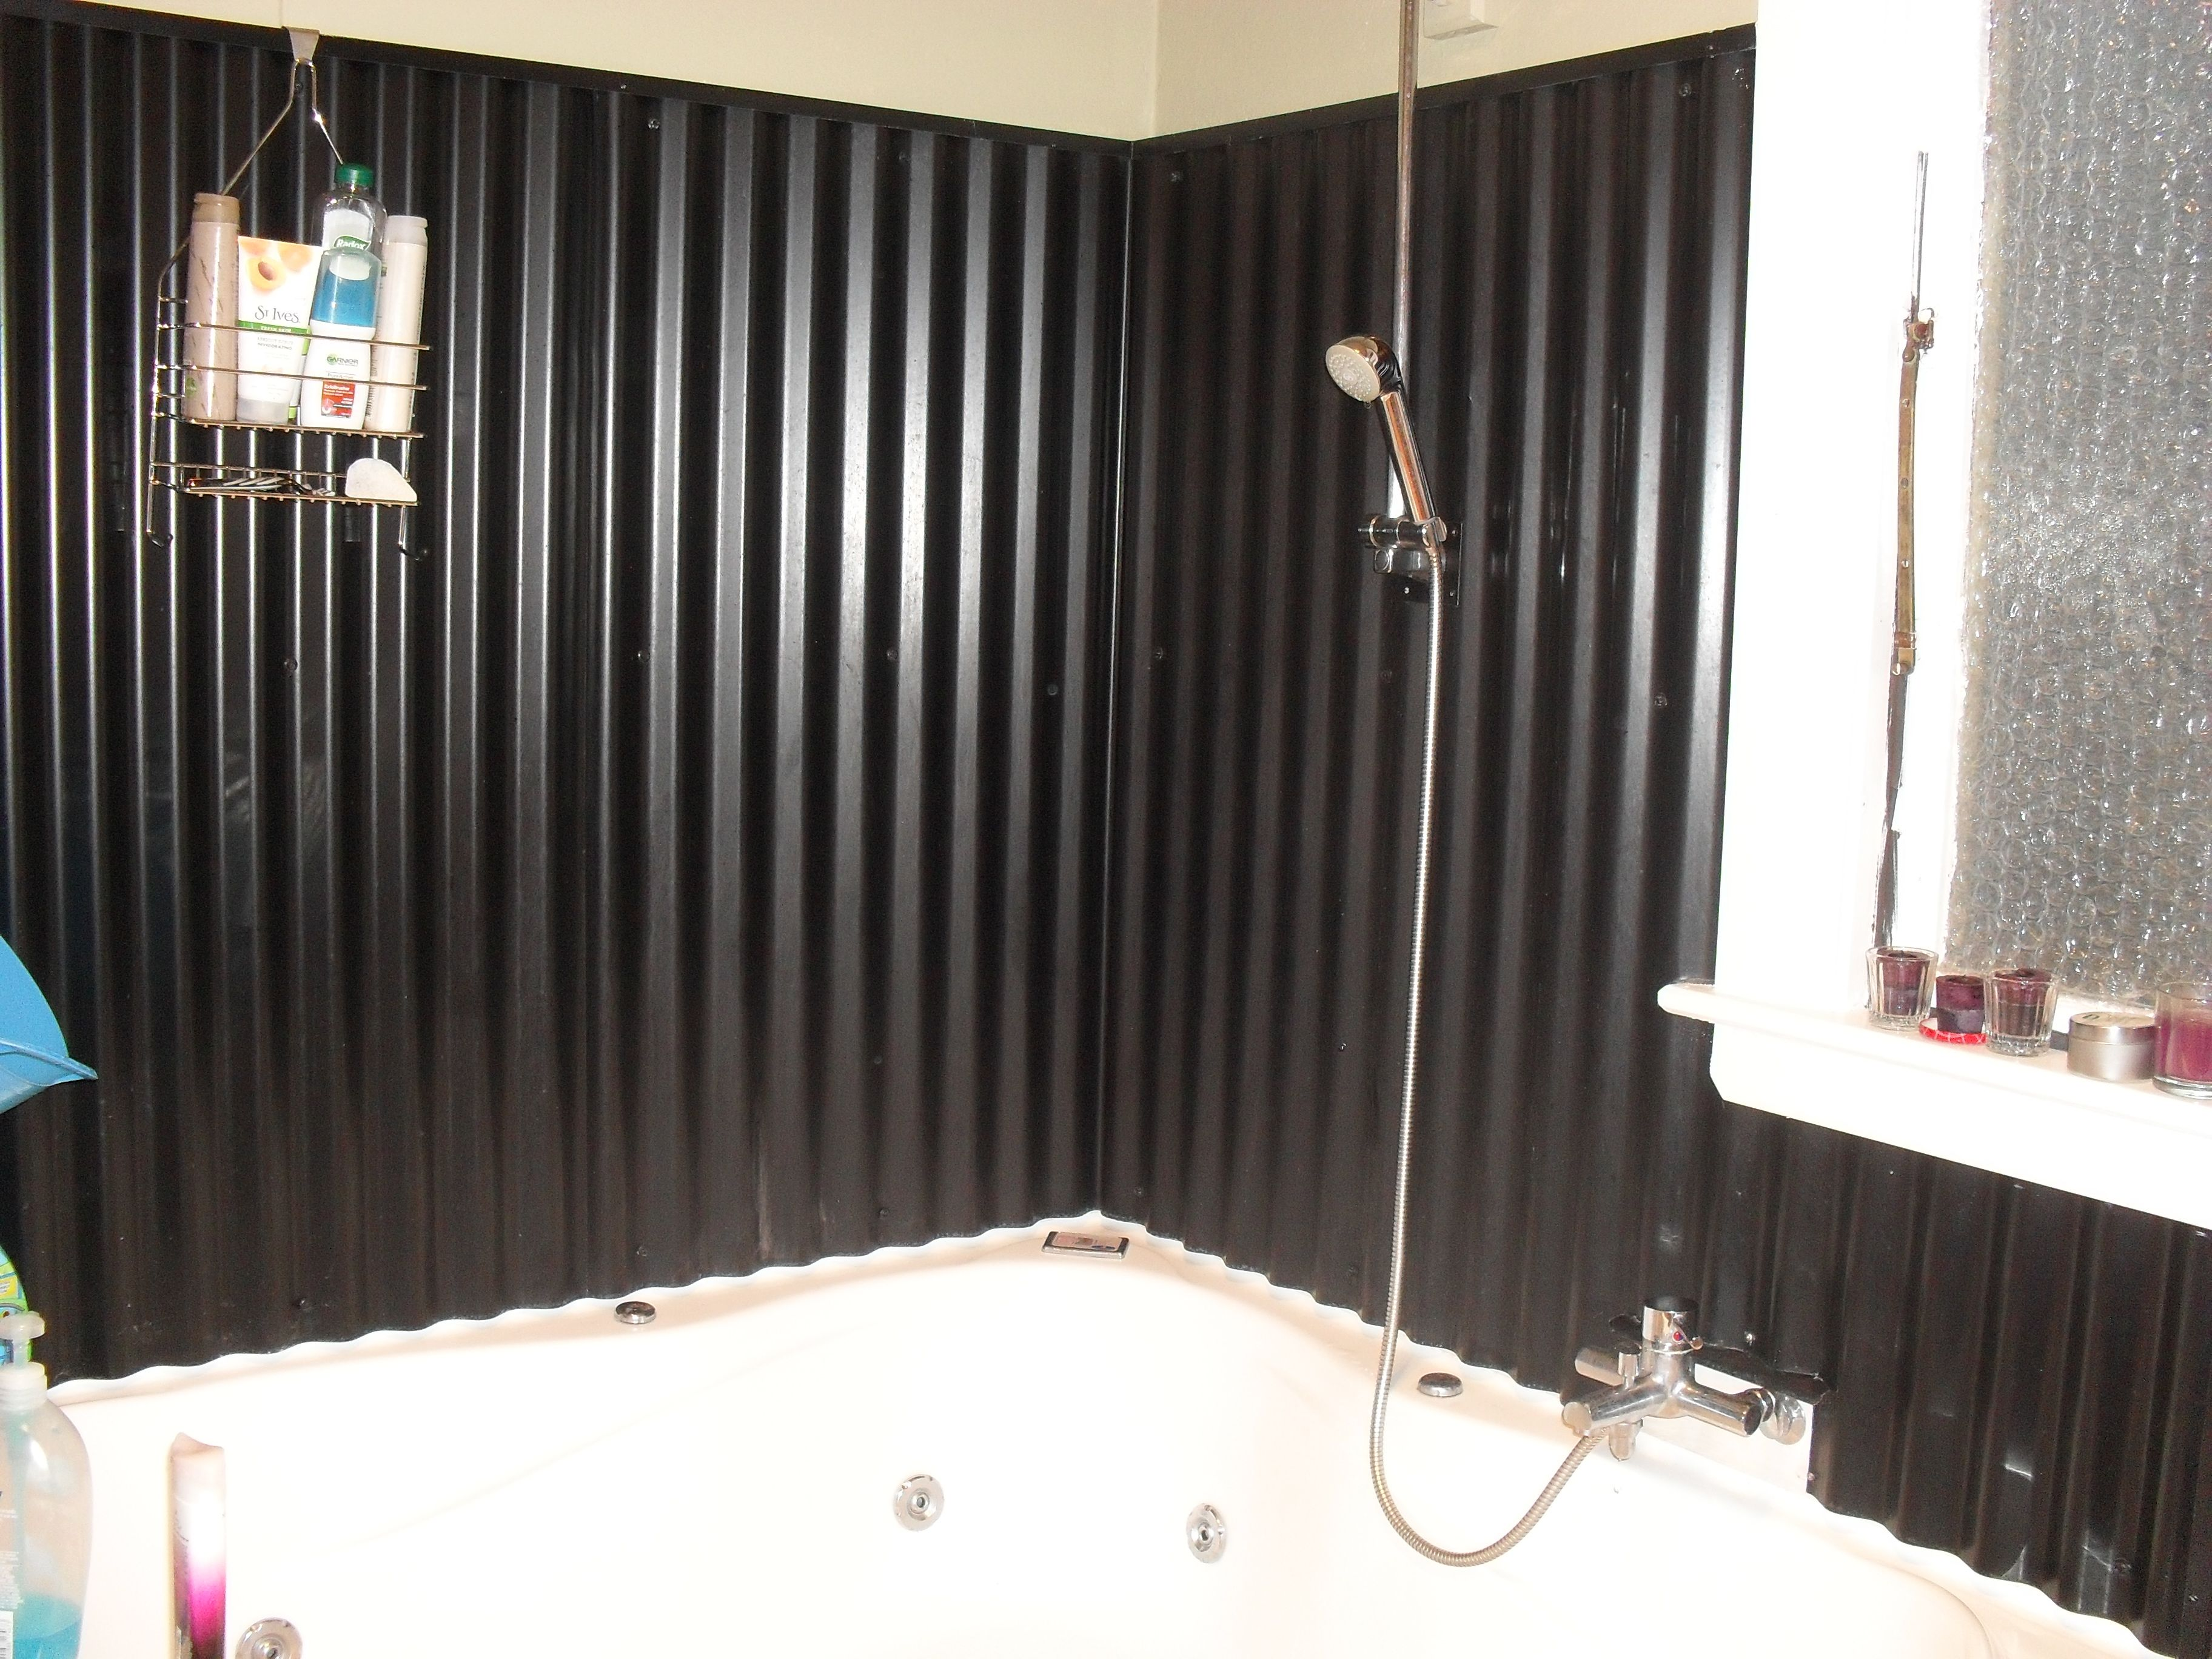 Corrugated Metal Bathroom Walls. Corrugated Iron For Bathroom Wall So Easy To Clean And Looks Great